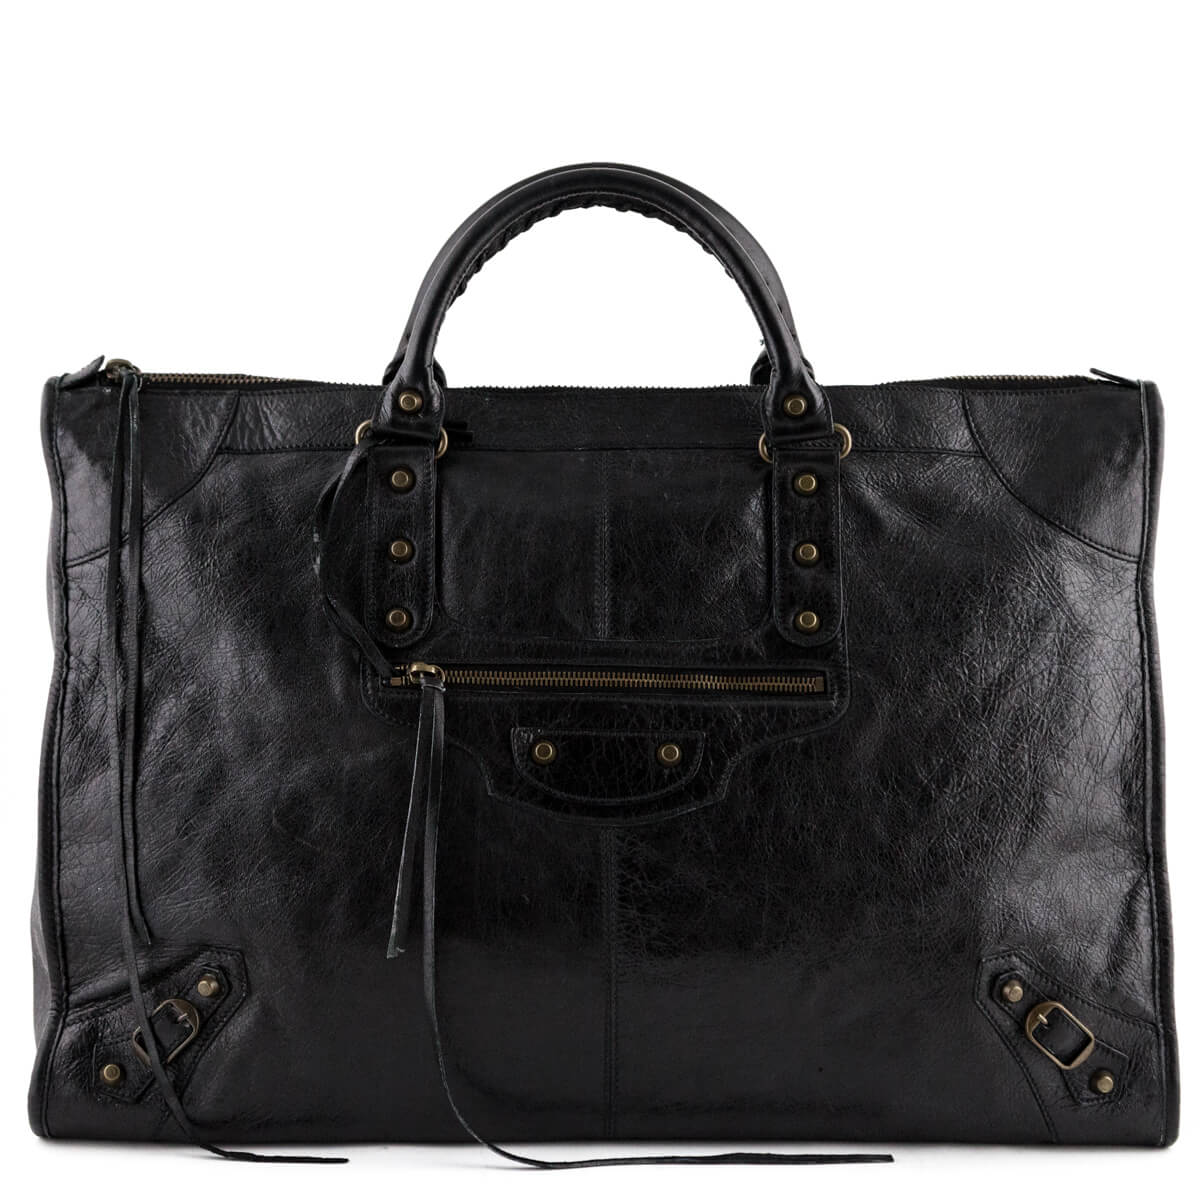 5d4fc1e8c5e6d1 Balenciaga Black Lambskin Motocross Classic City Weekender - LOVE that BAG  - Preowned Authentic Designer Handbags ...